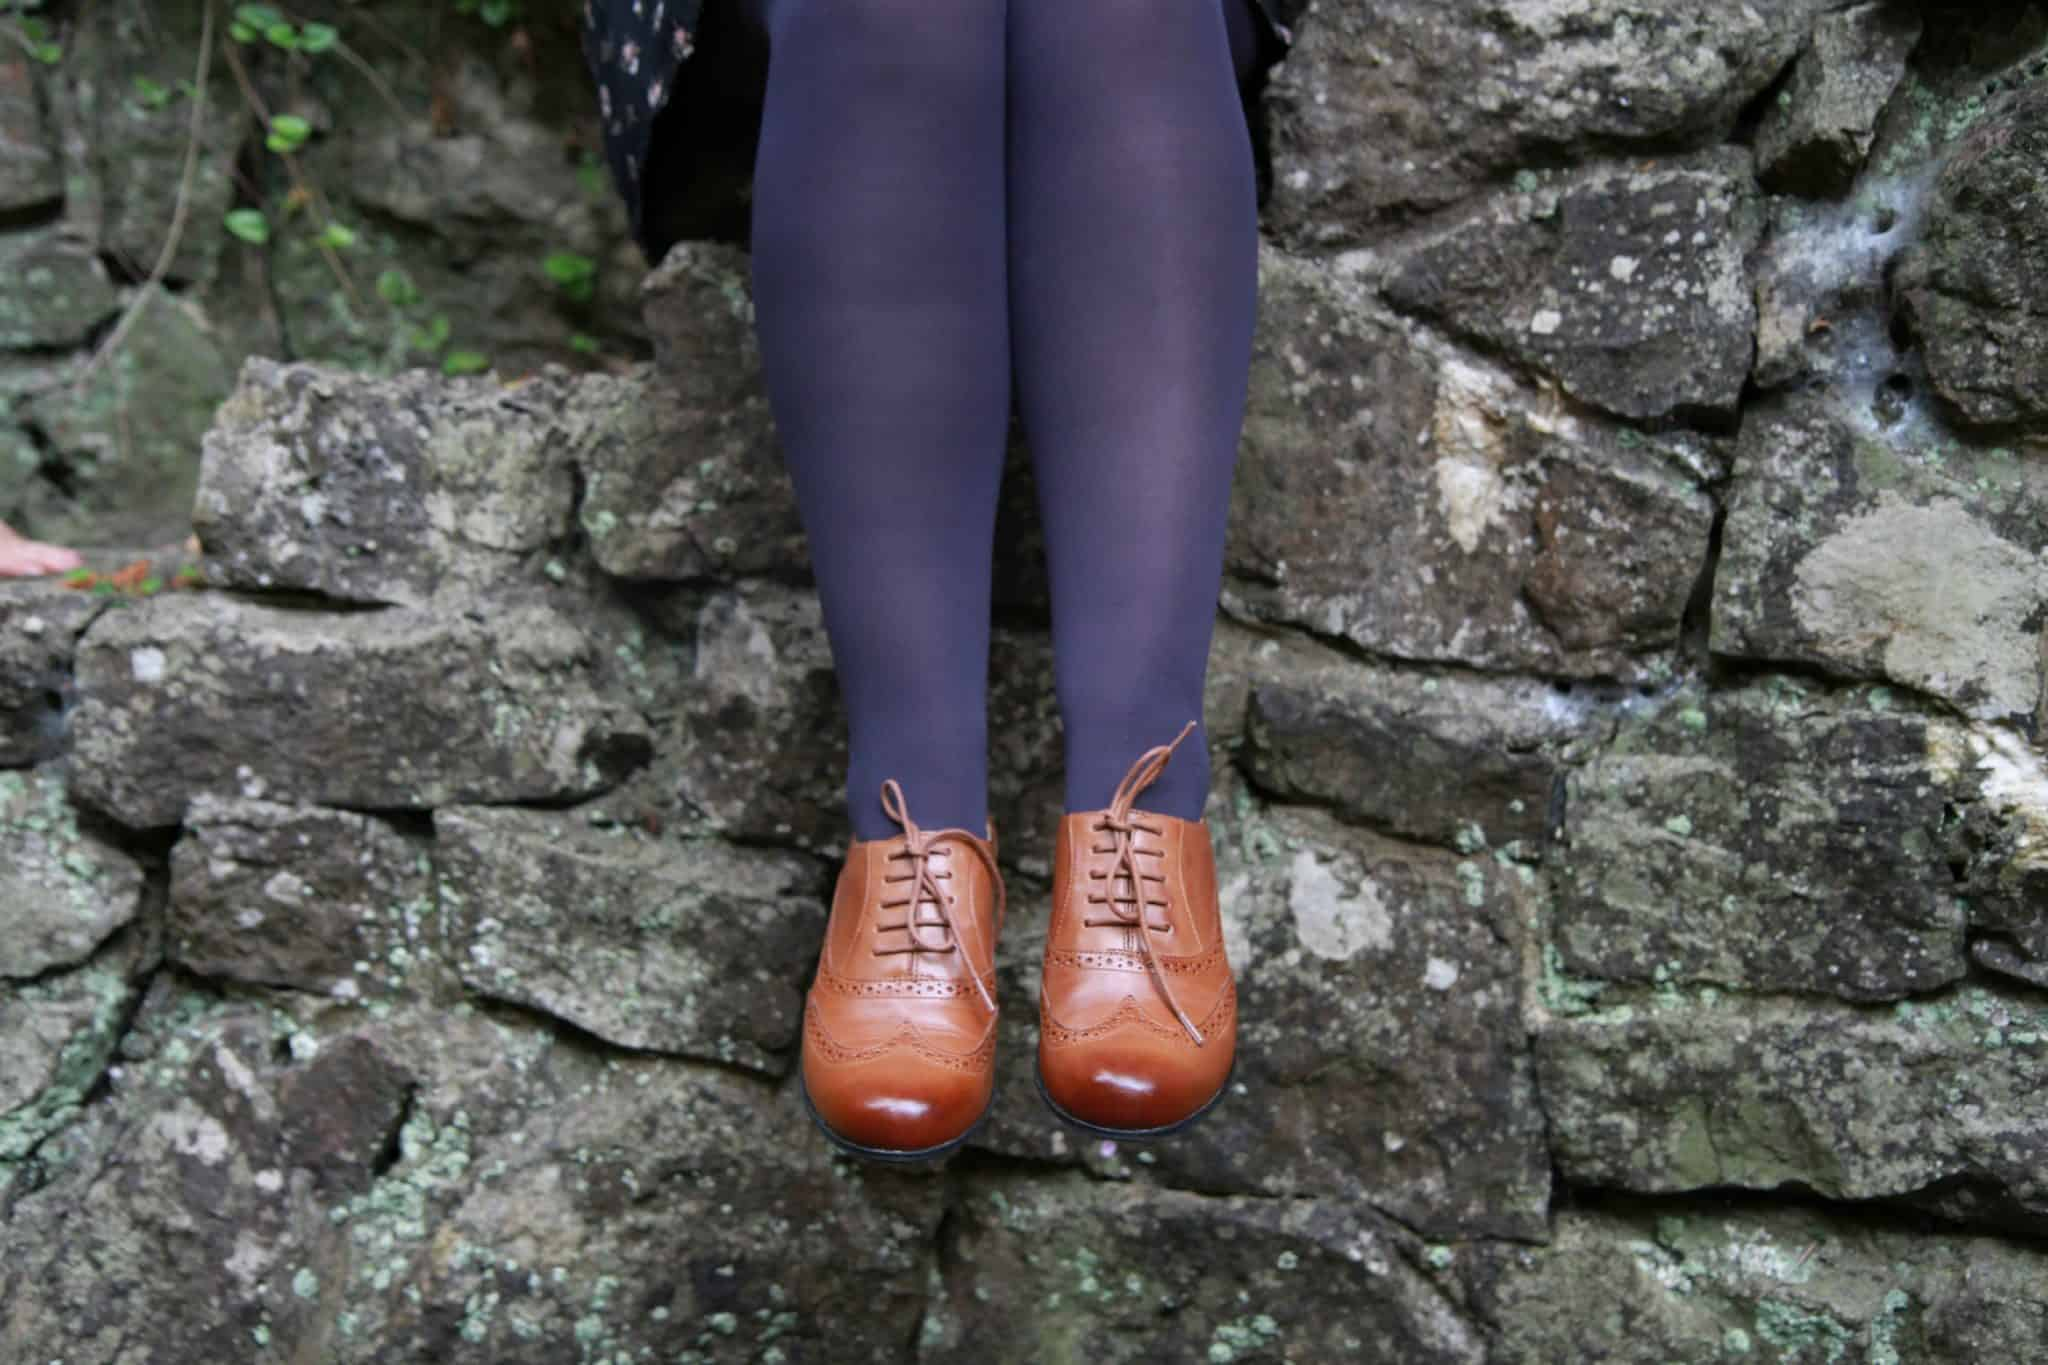 Tan leather brogues worn with a button through dress and navy blue tights